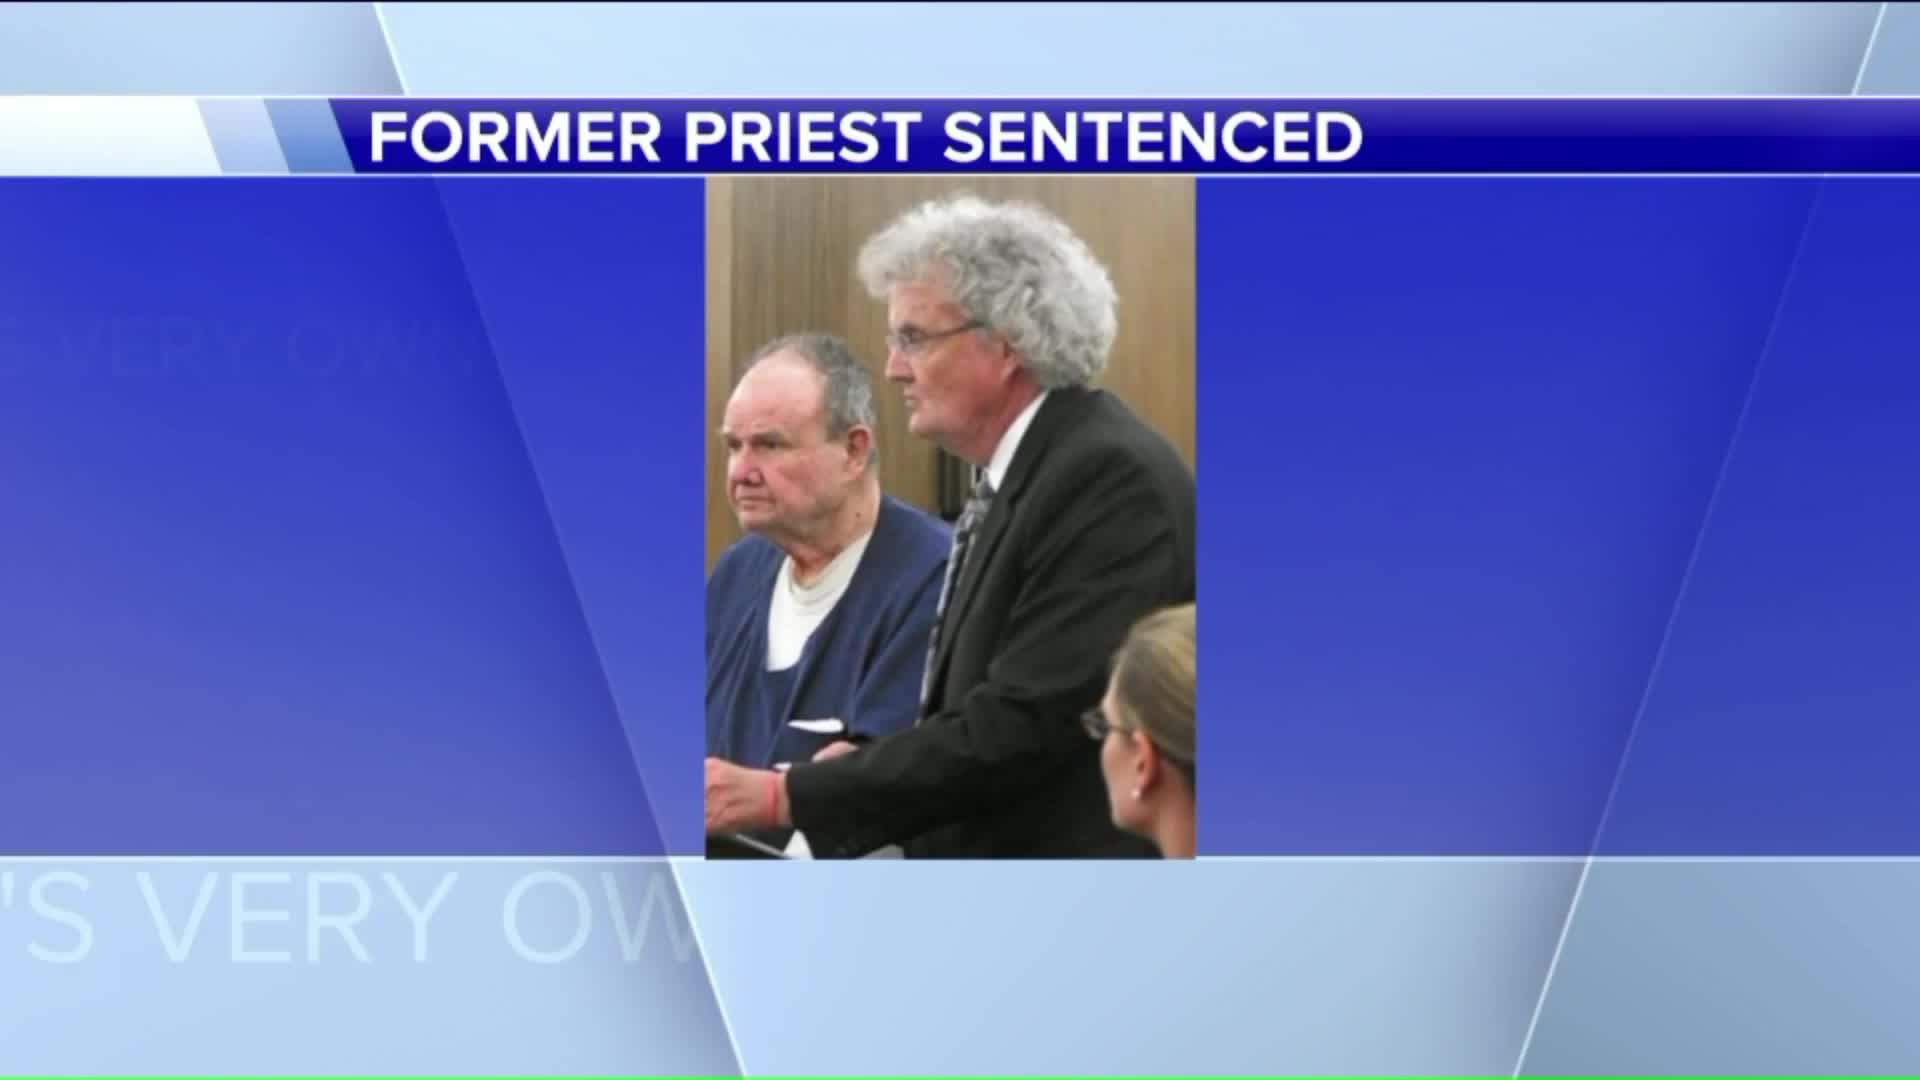 Former Priest Sentenced To Another Term Behind Bars For Child Sex Crimes